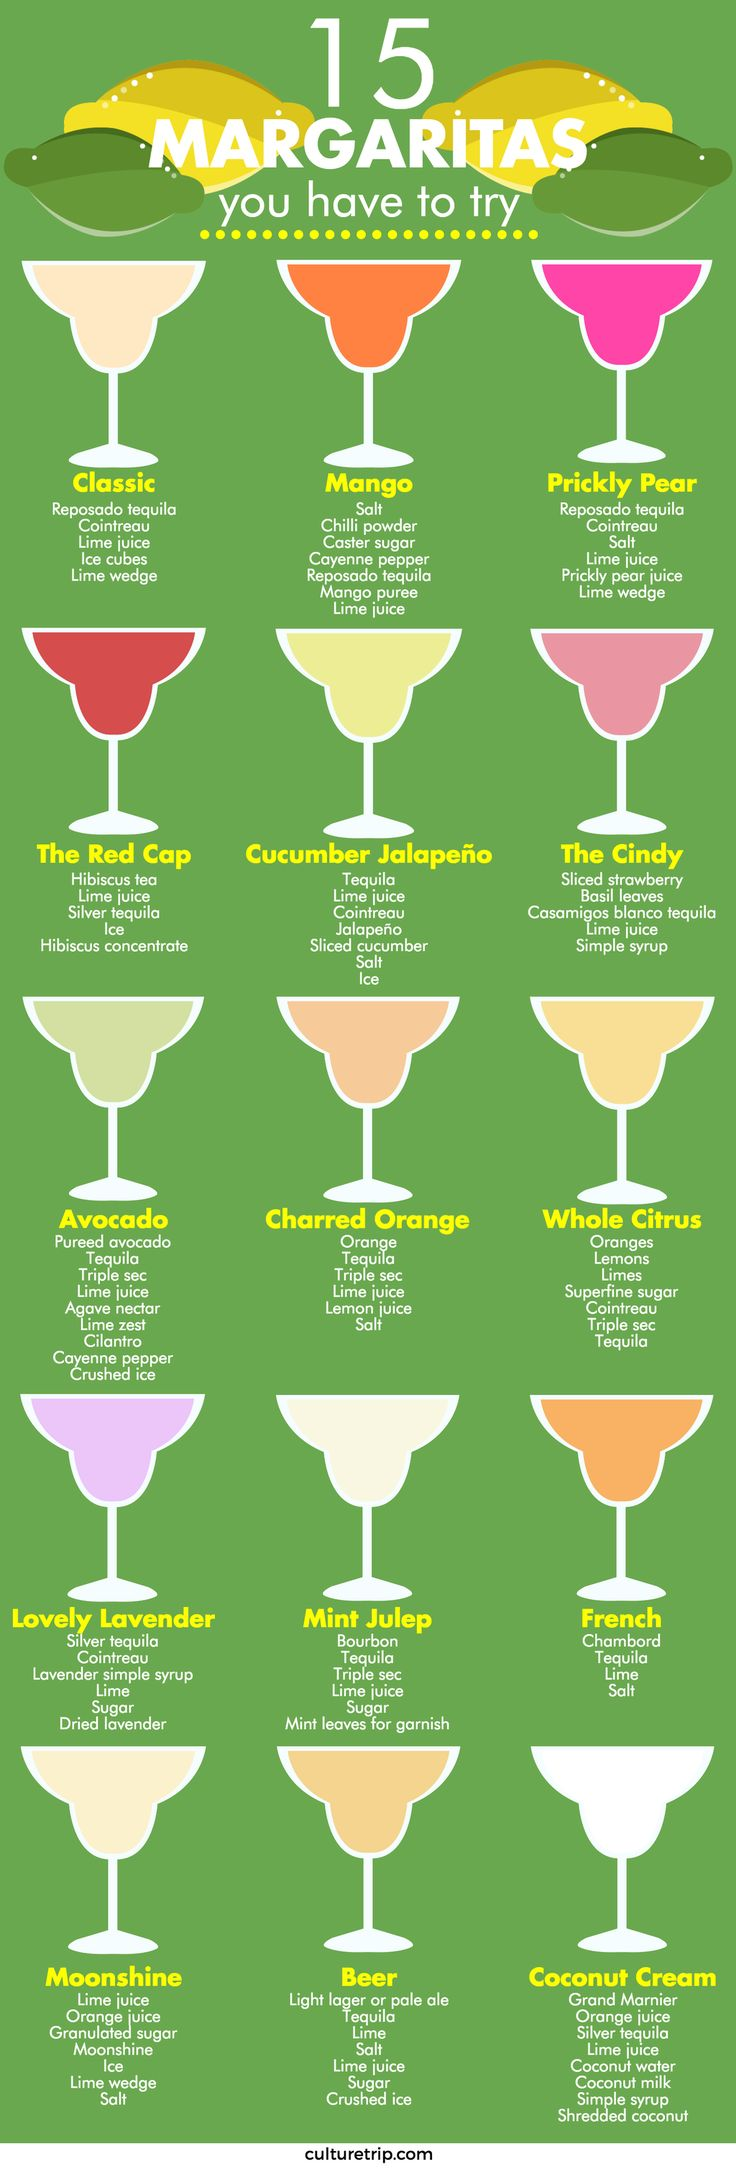 15 Margaritas You Have To Try